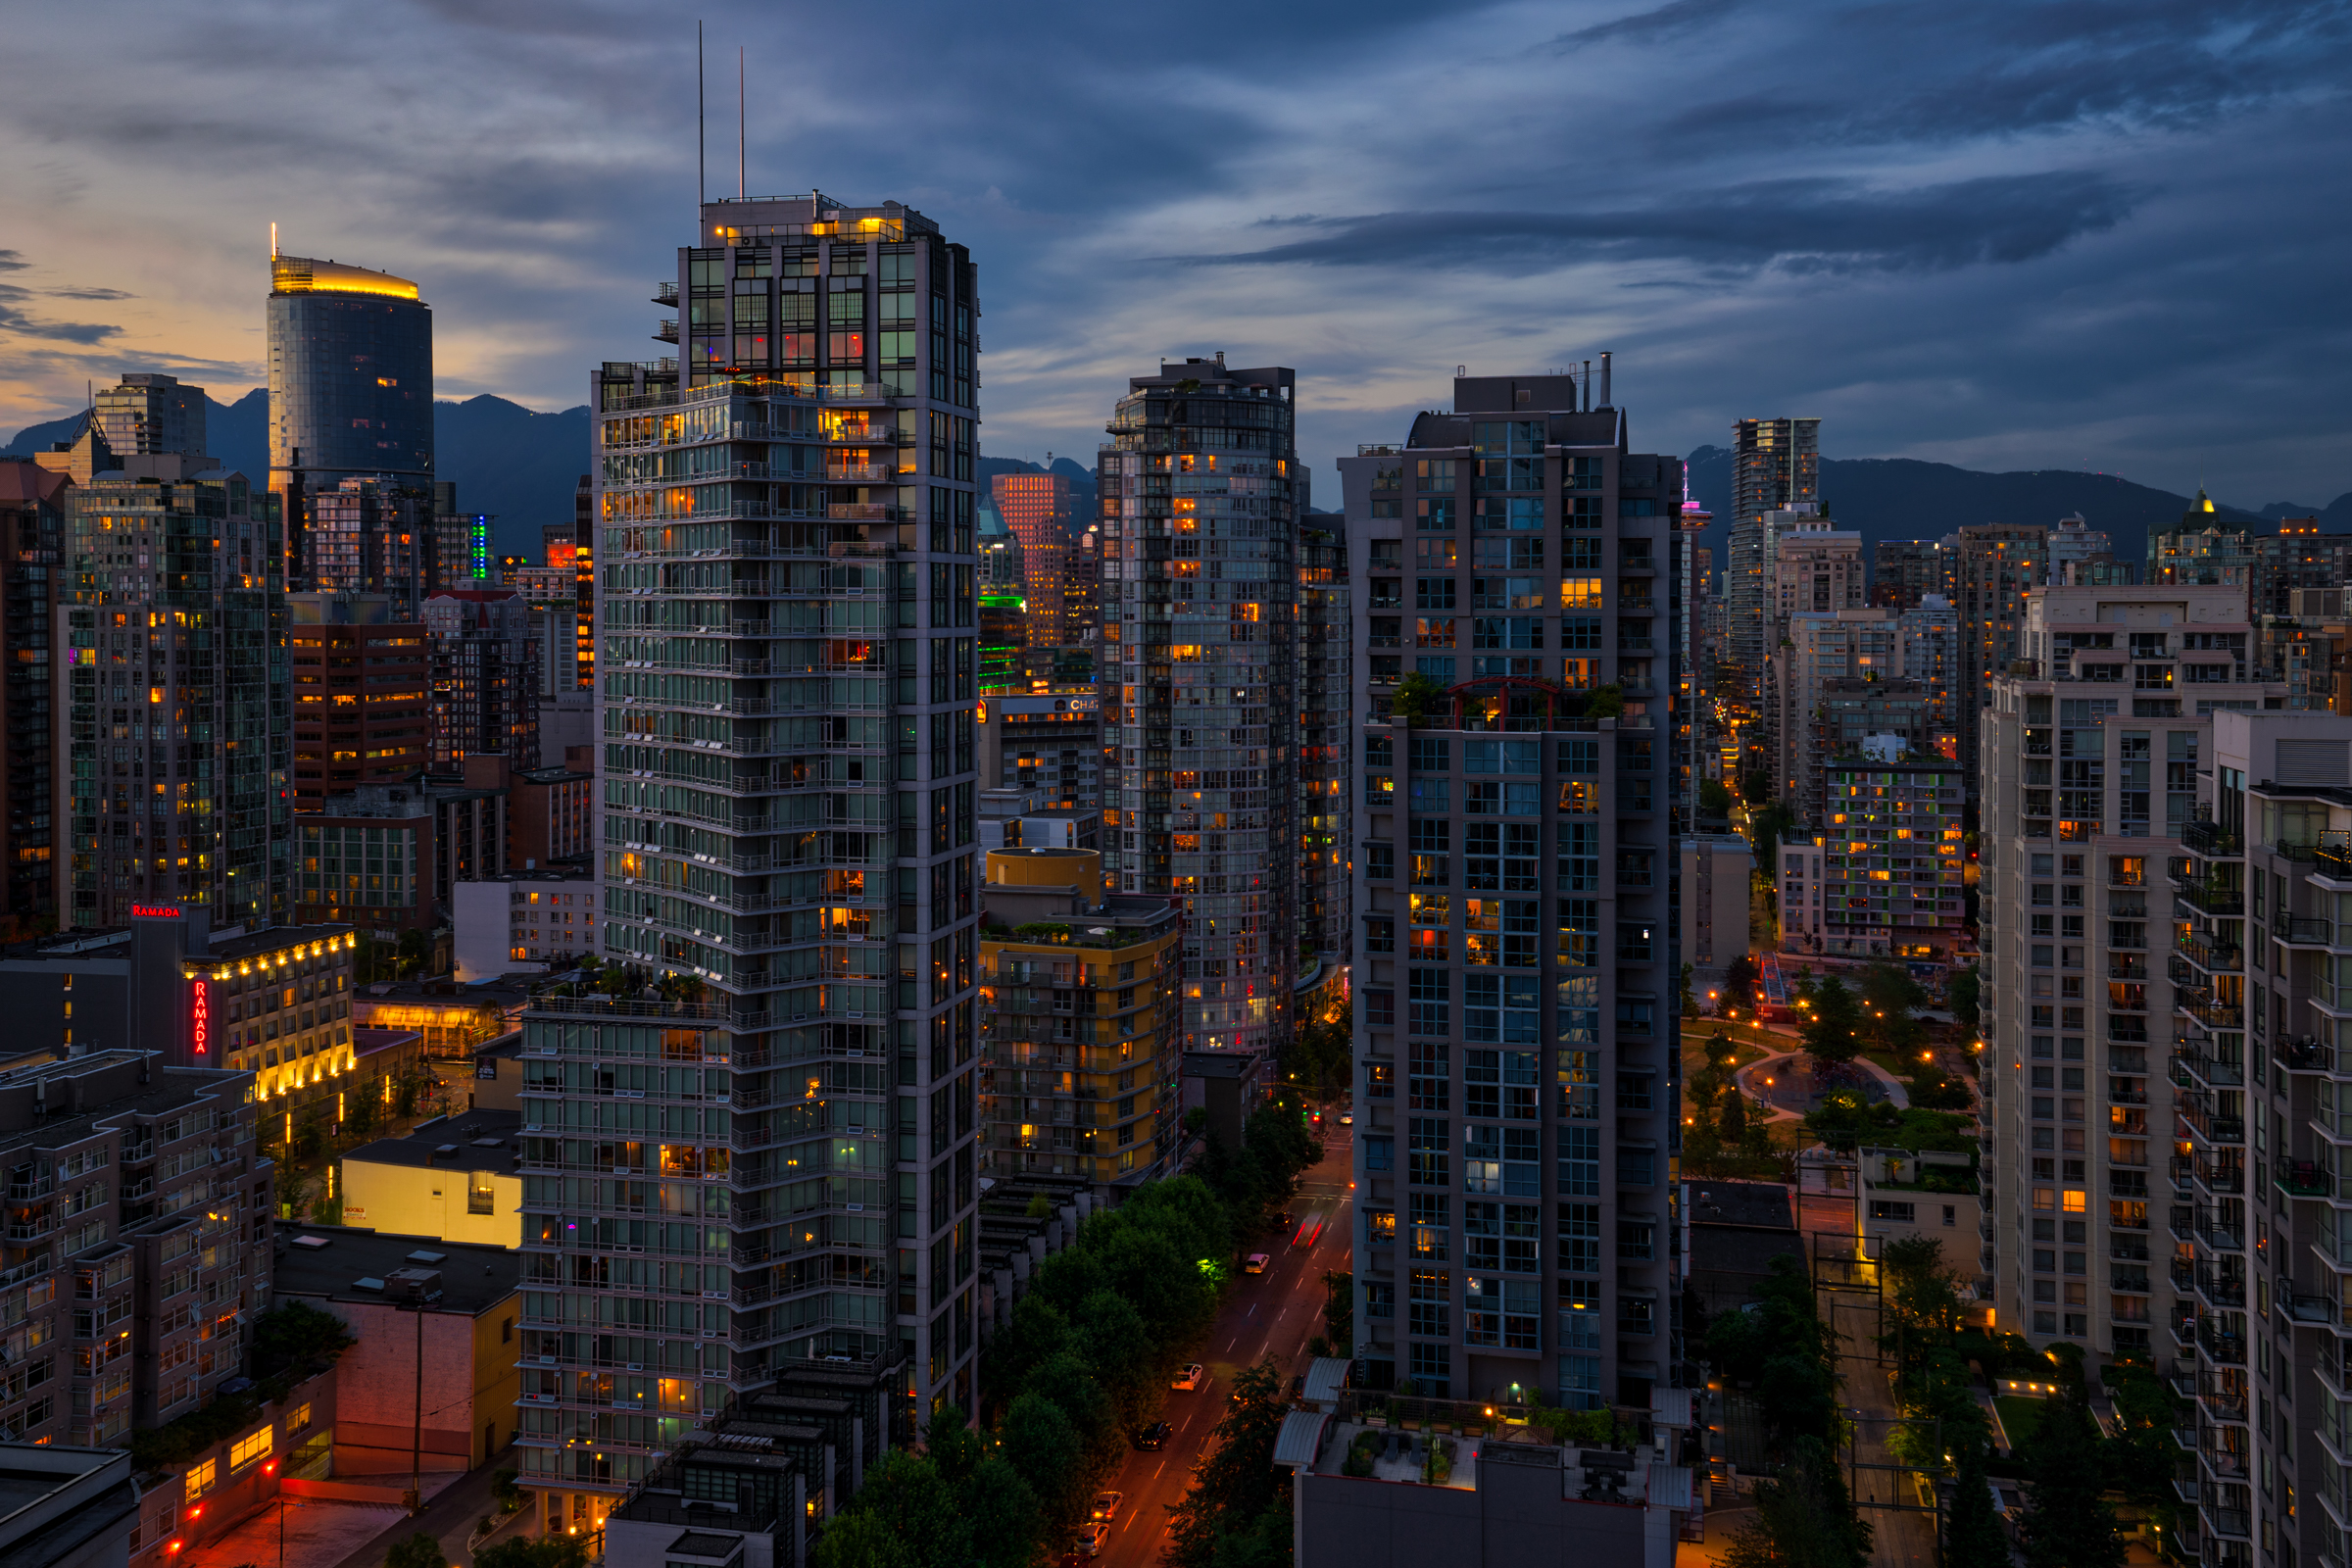 Evening falls on Vancouver, Canada